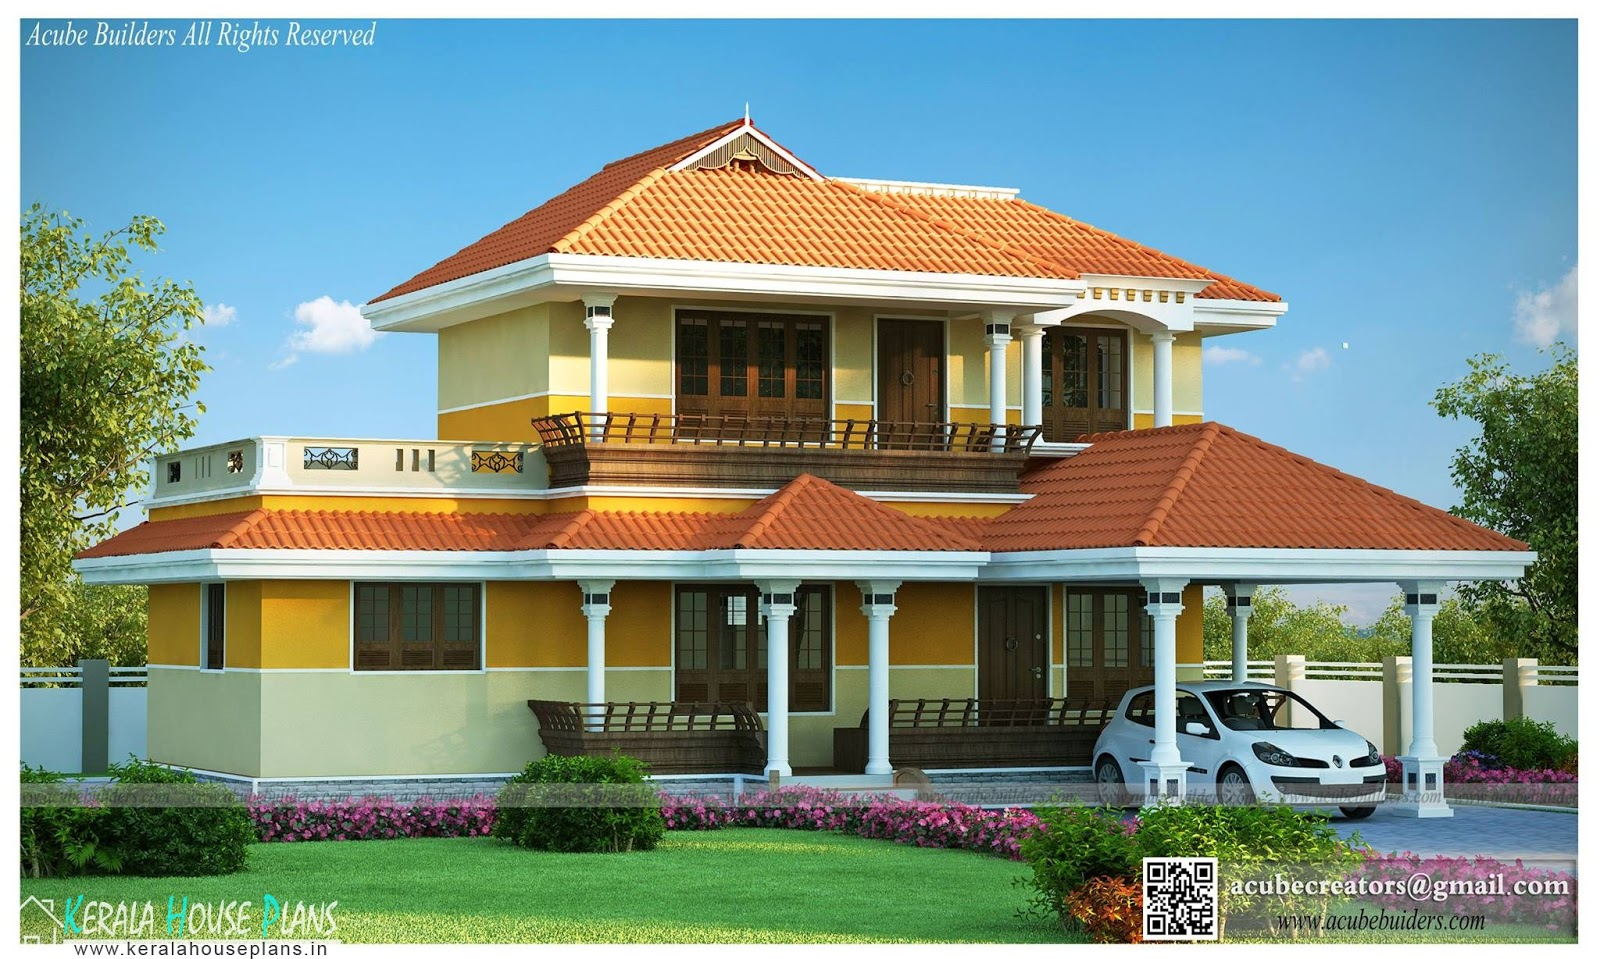 Traditional house plans in kerala kerala house plans for Kerala house plan images